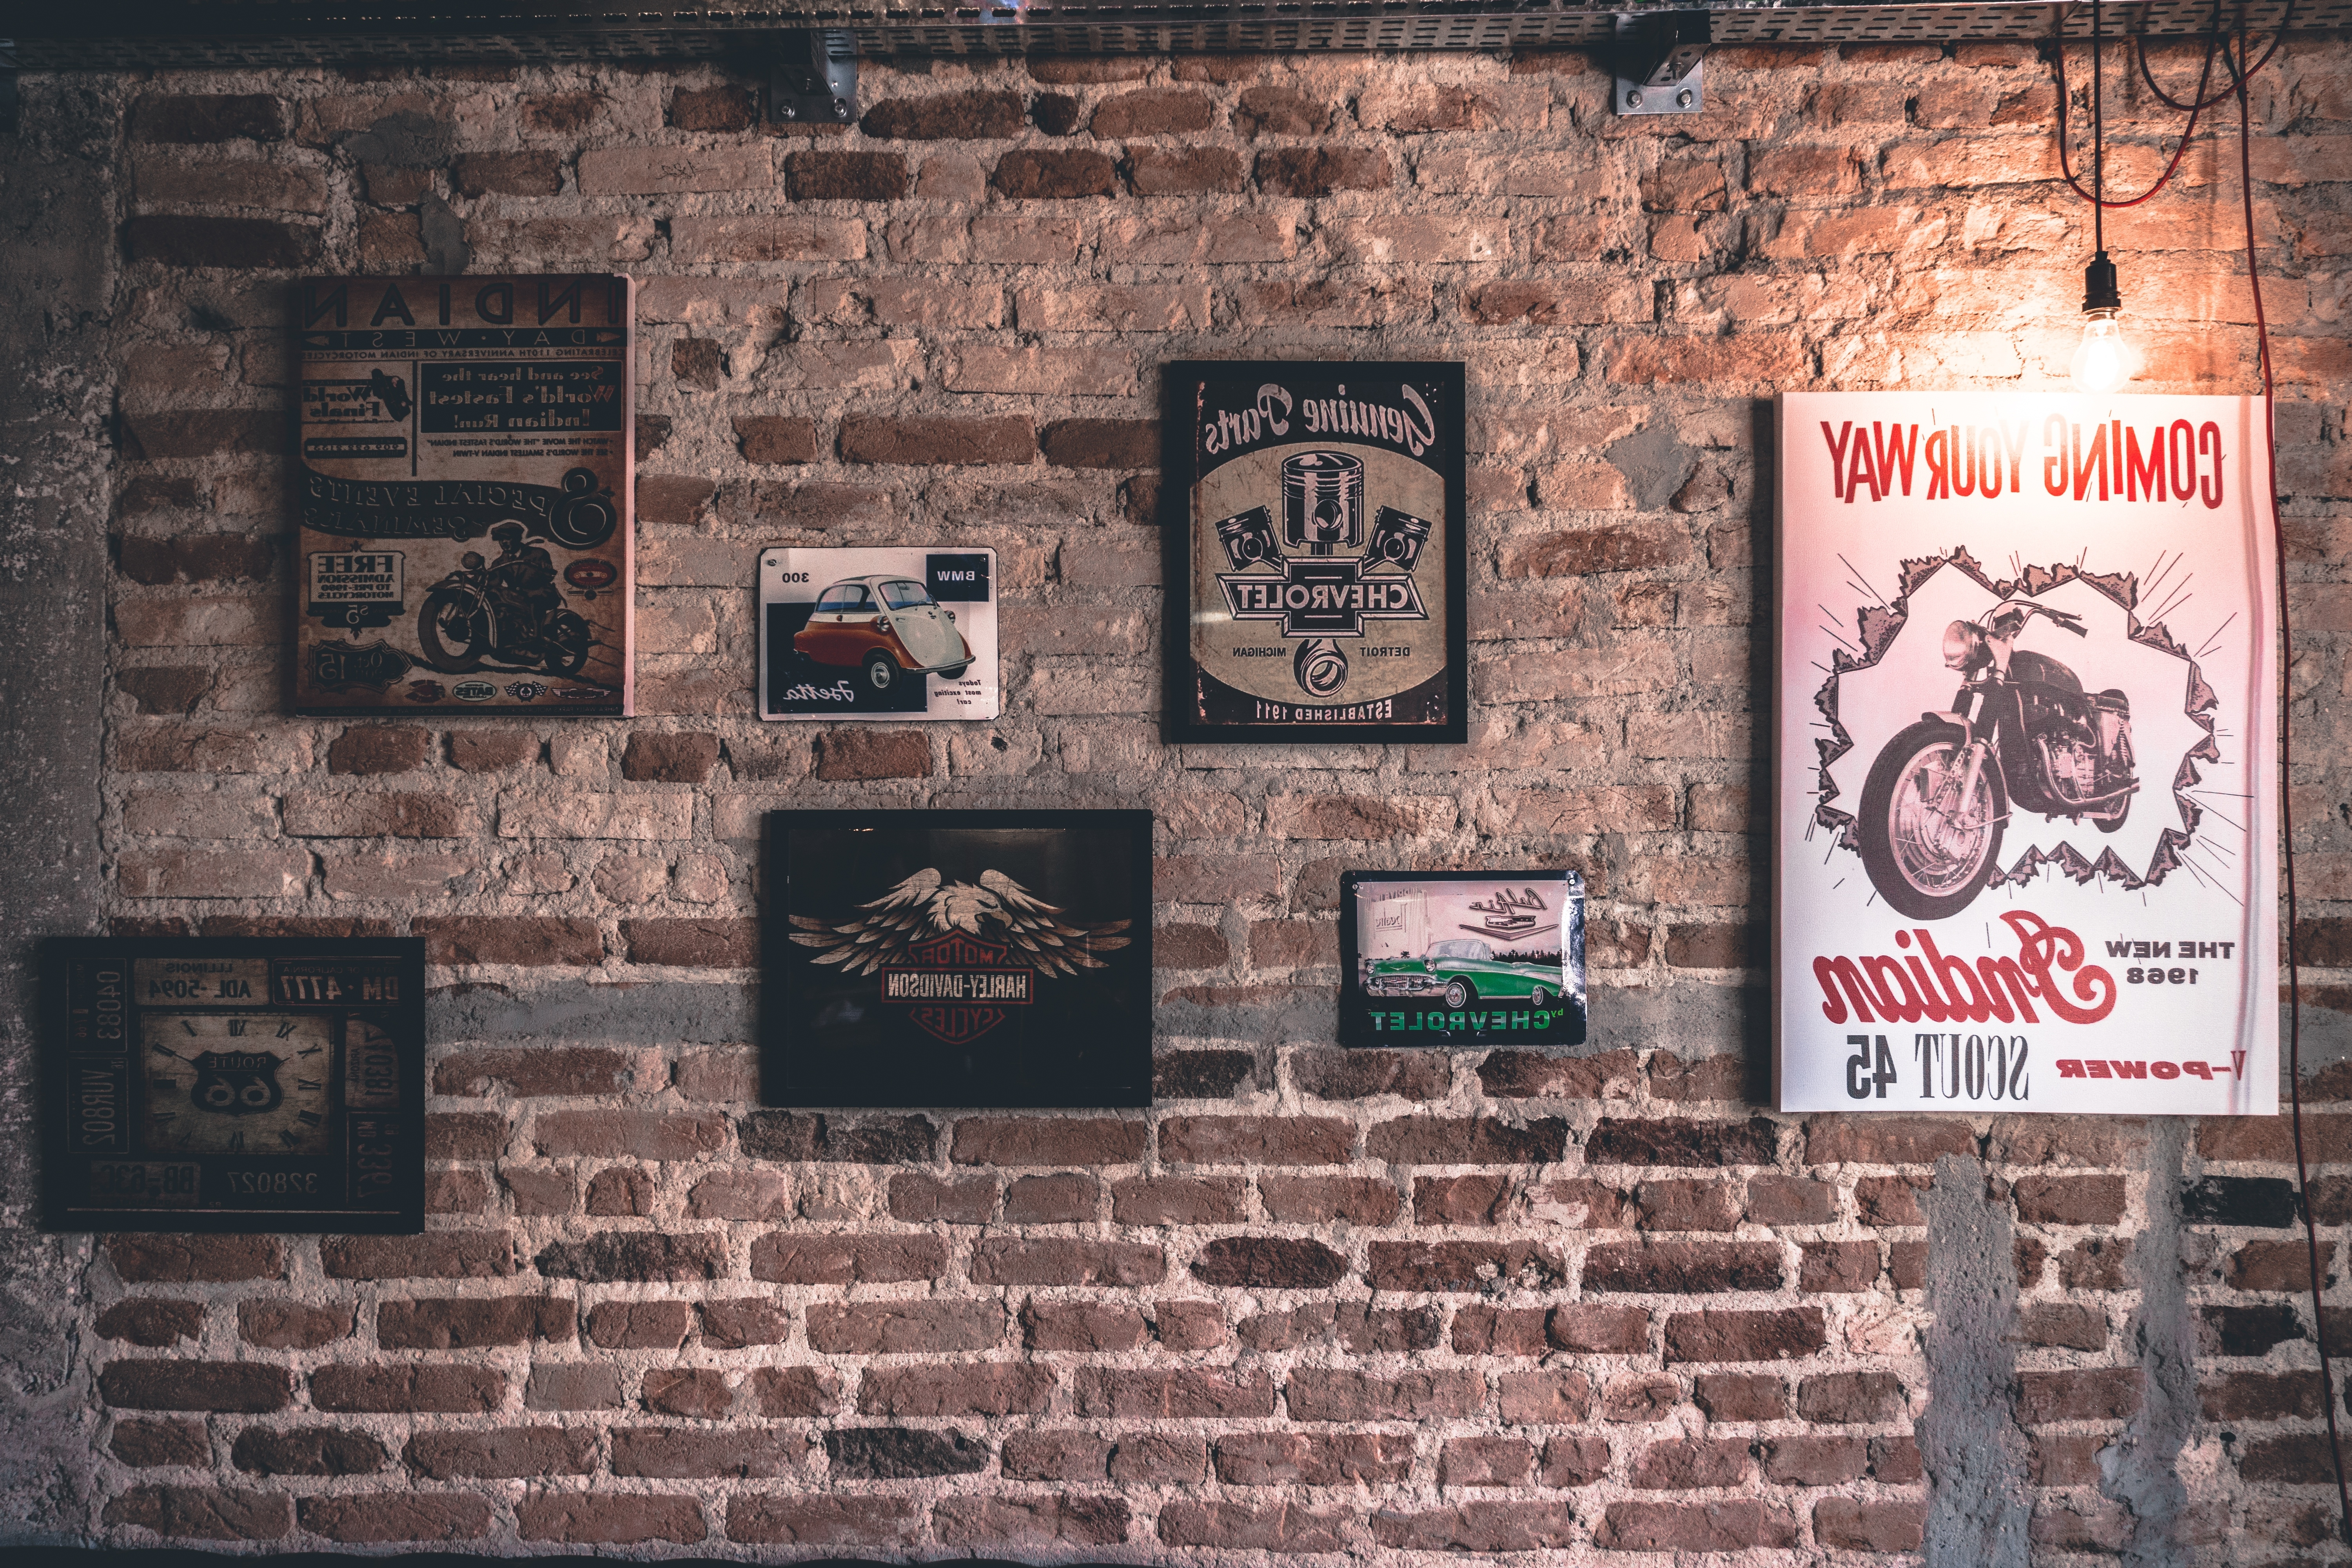 Brick Wall Art Frame Vintage Free Stock Photo – Negativespace Throughout Newest Vintage Wall Art (View 5 of 15)